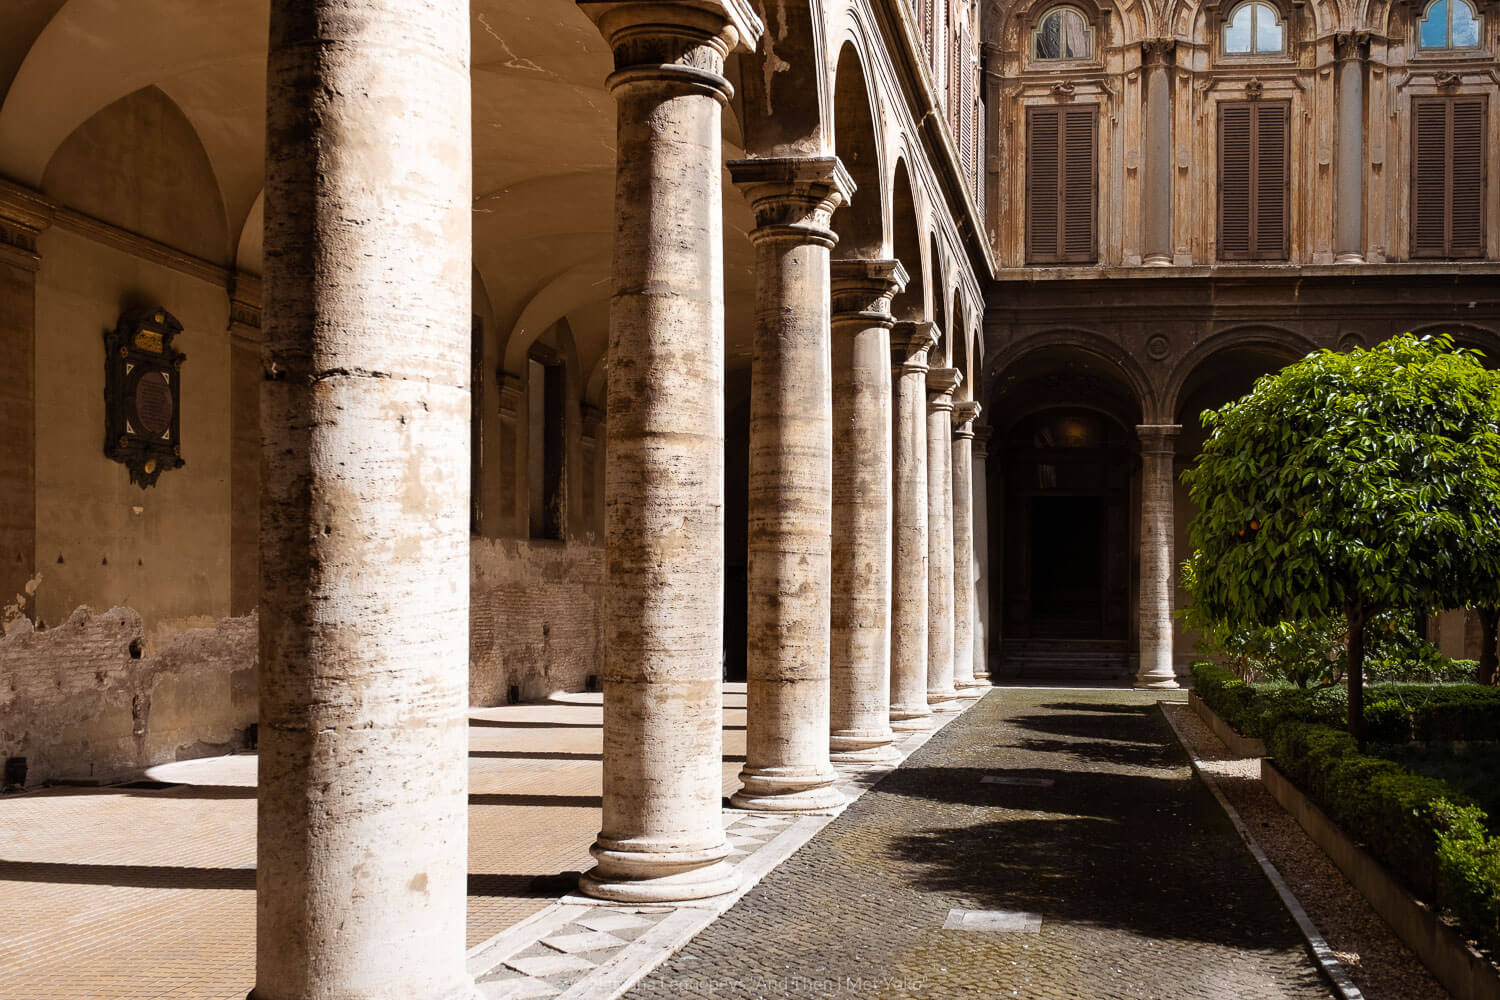 """Courtyard in the Doria Pamphilj Gallery, Rome. Travel photography and guide by © Natasha Lequepeys for """"And Then I Met Yoko"""". #rome #italy #travelblog #travelphotography"""